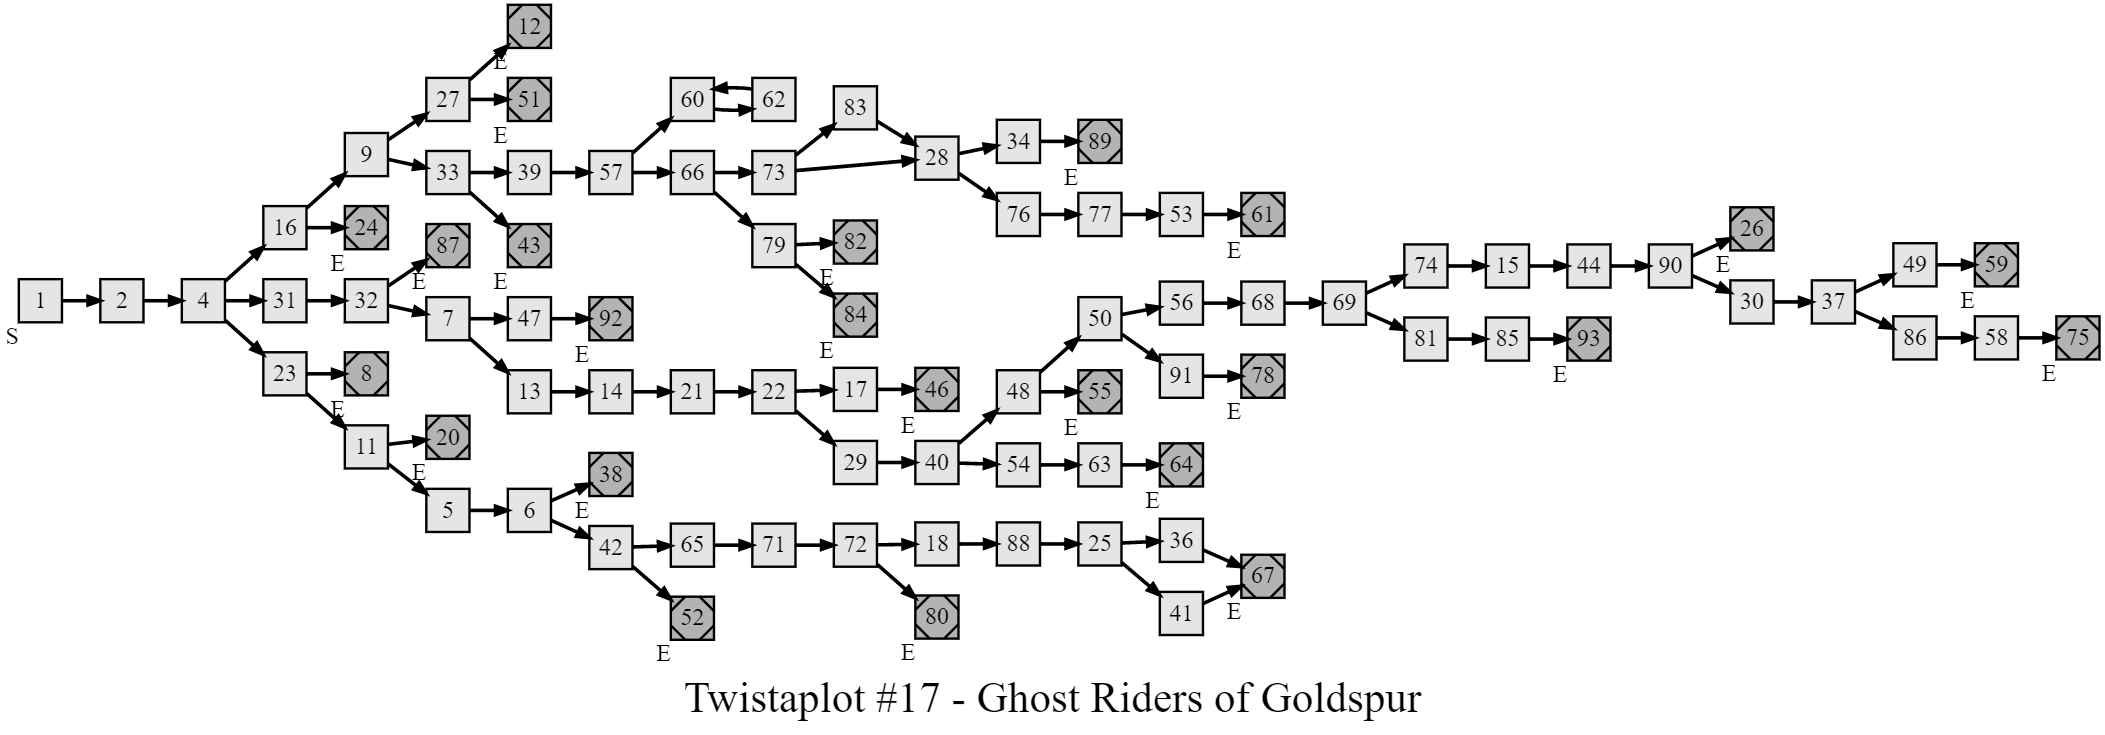 item - ghost riders of goldspur